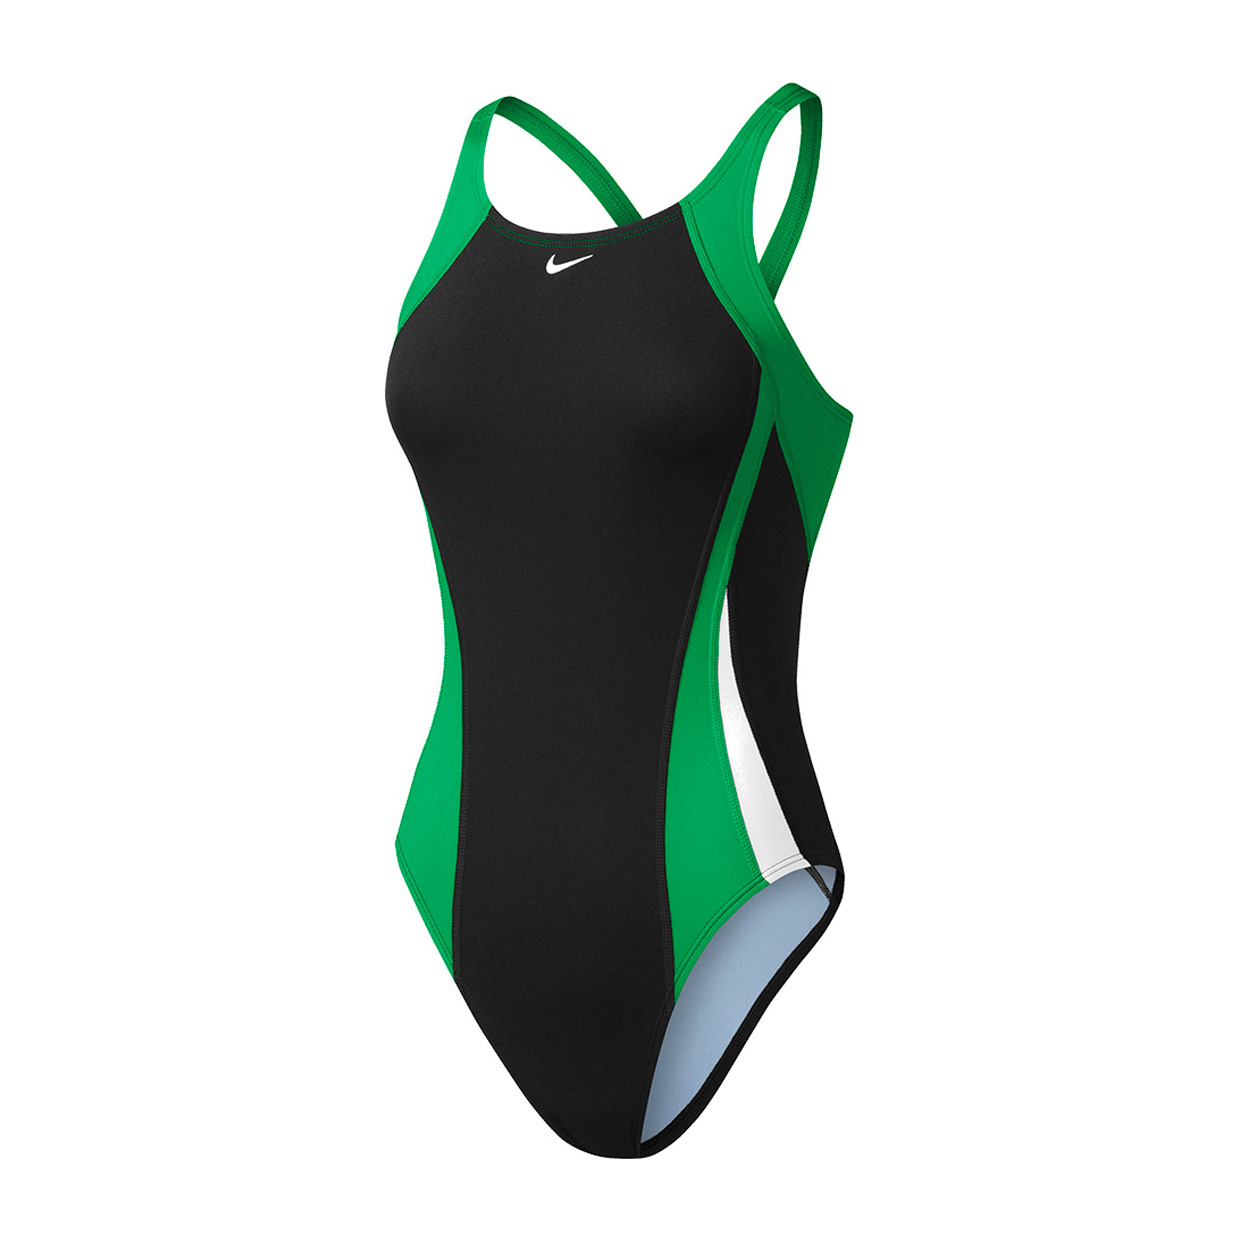 Comfort Colors Color Chart >> Nike Poly Color Surge Fastback One-Piece Swimsuit